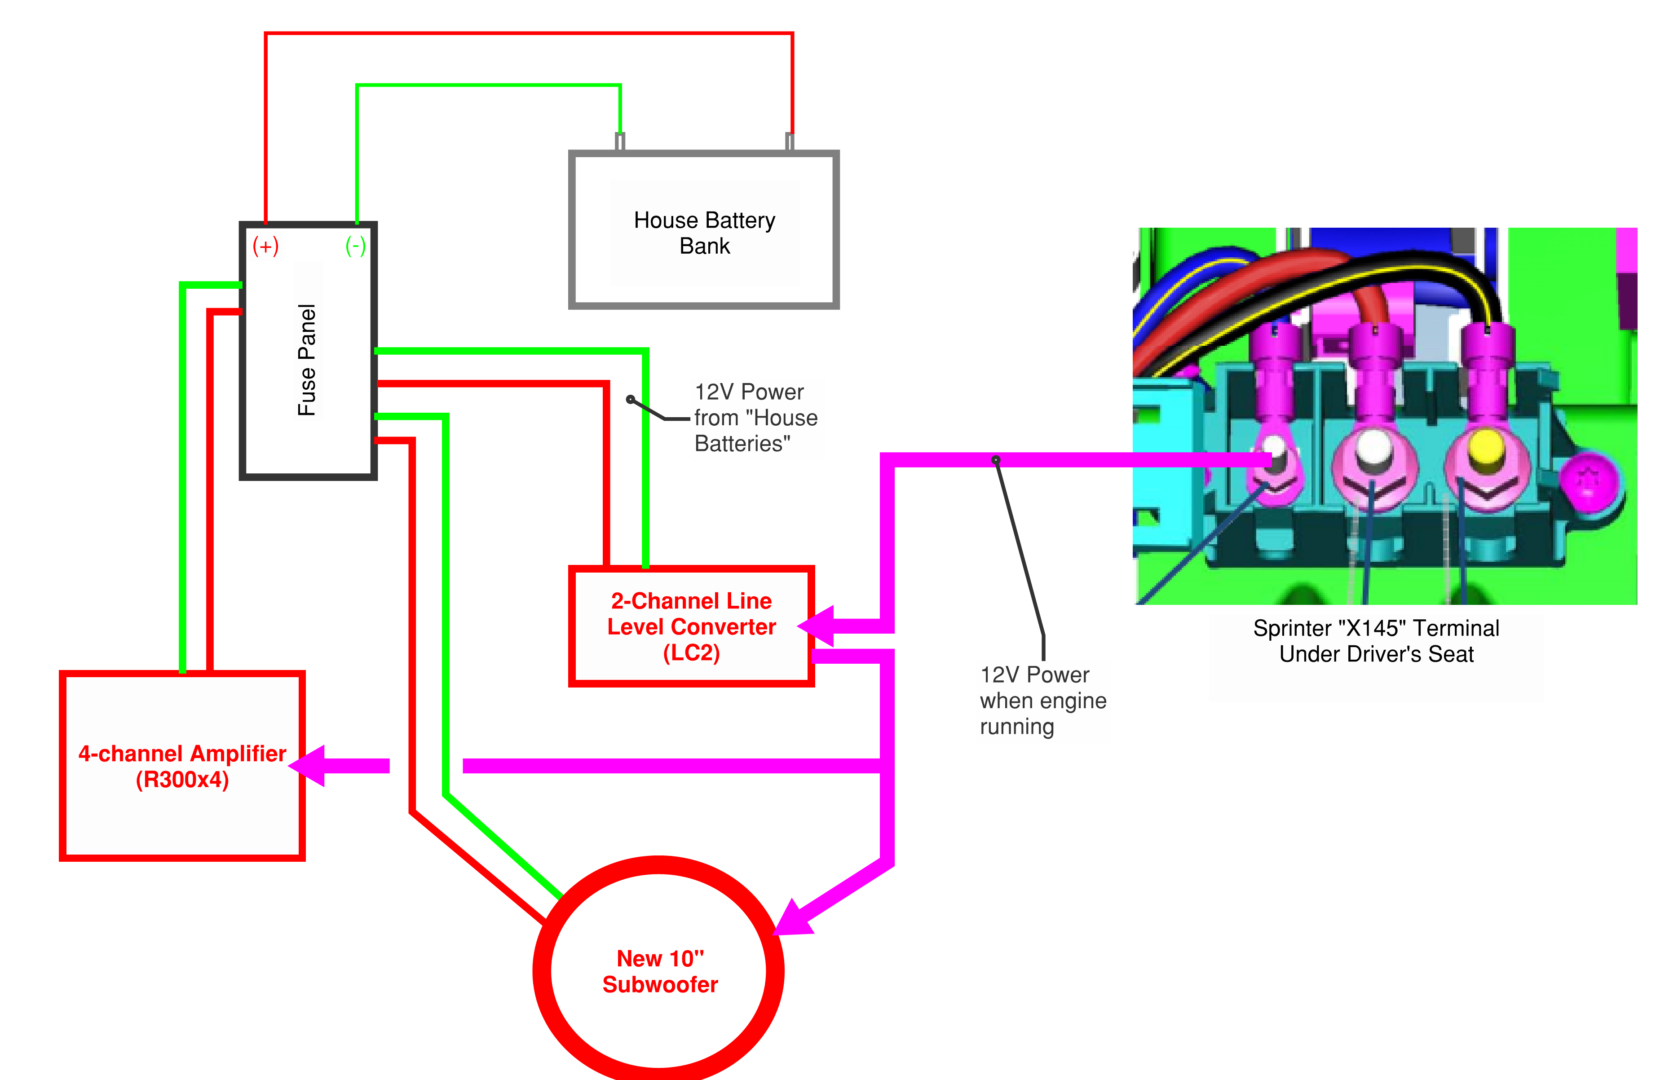 Sprinter Stock Stereo Upgrade And Speaker Replacement Points Unknown Surround Wiring Diagram For The Large Gauge That Is Needed To Power An Amp I Chose Boss Audio Kit Used Two Of These On My Subwoofer One